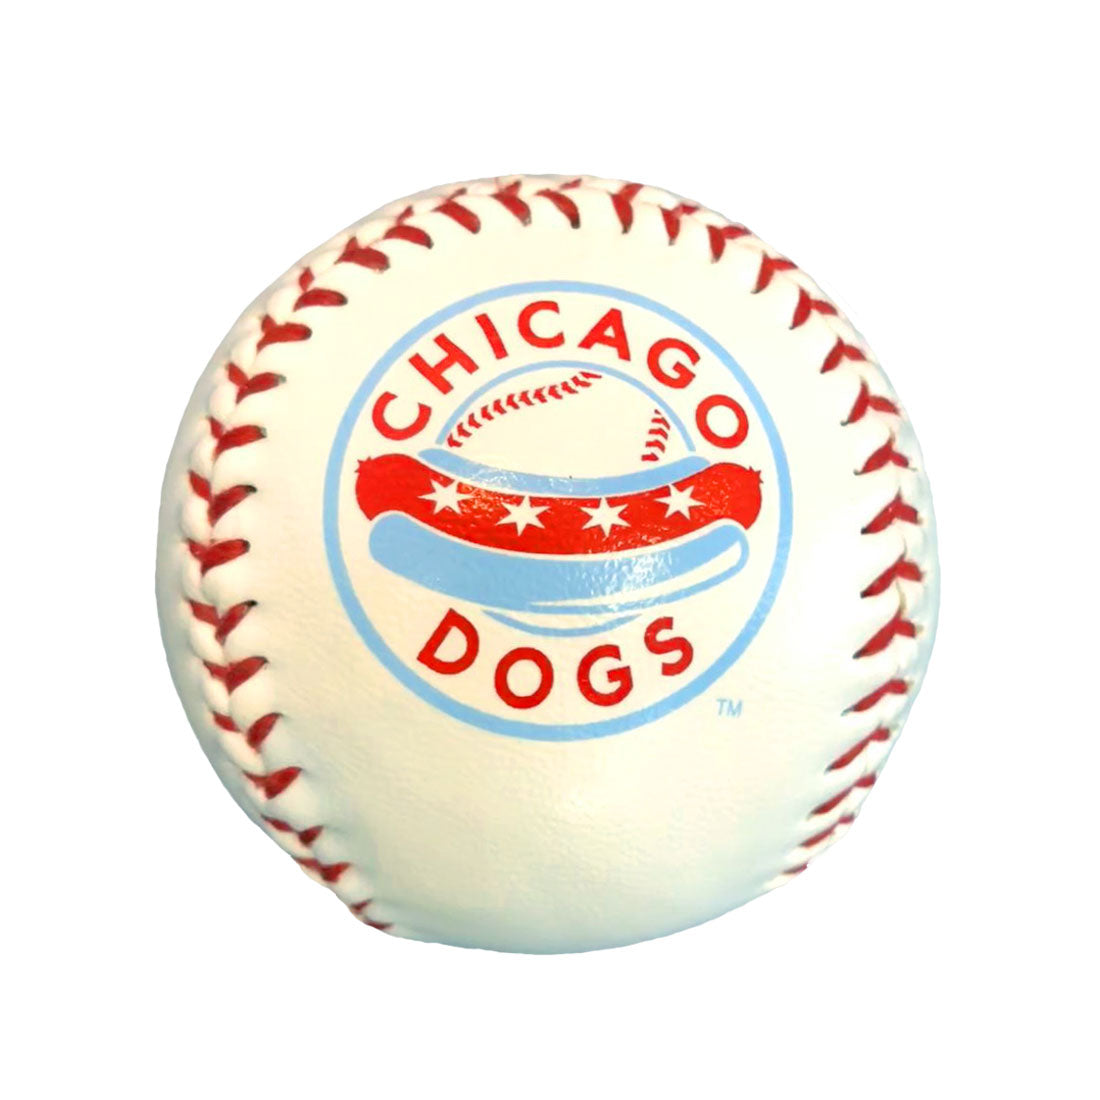 Chicago Dogs Rawlings Team Logo Baseball - Chicago Dogs Team Store